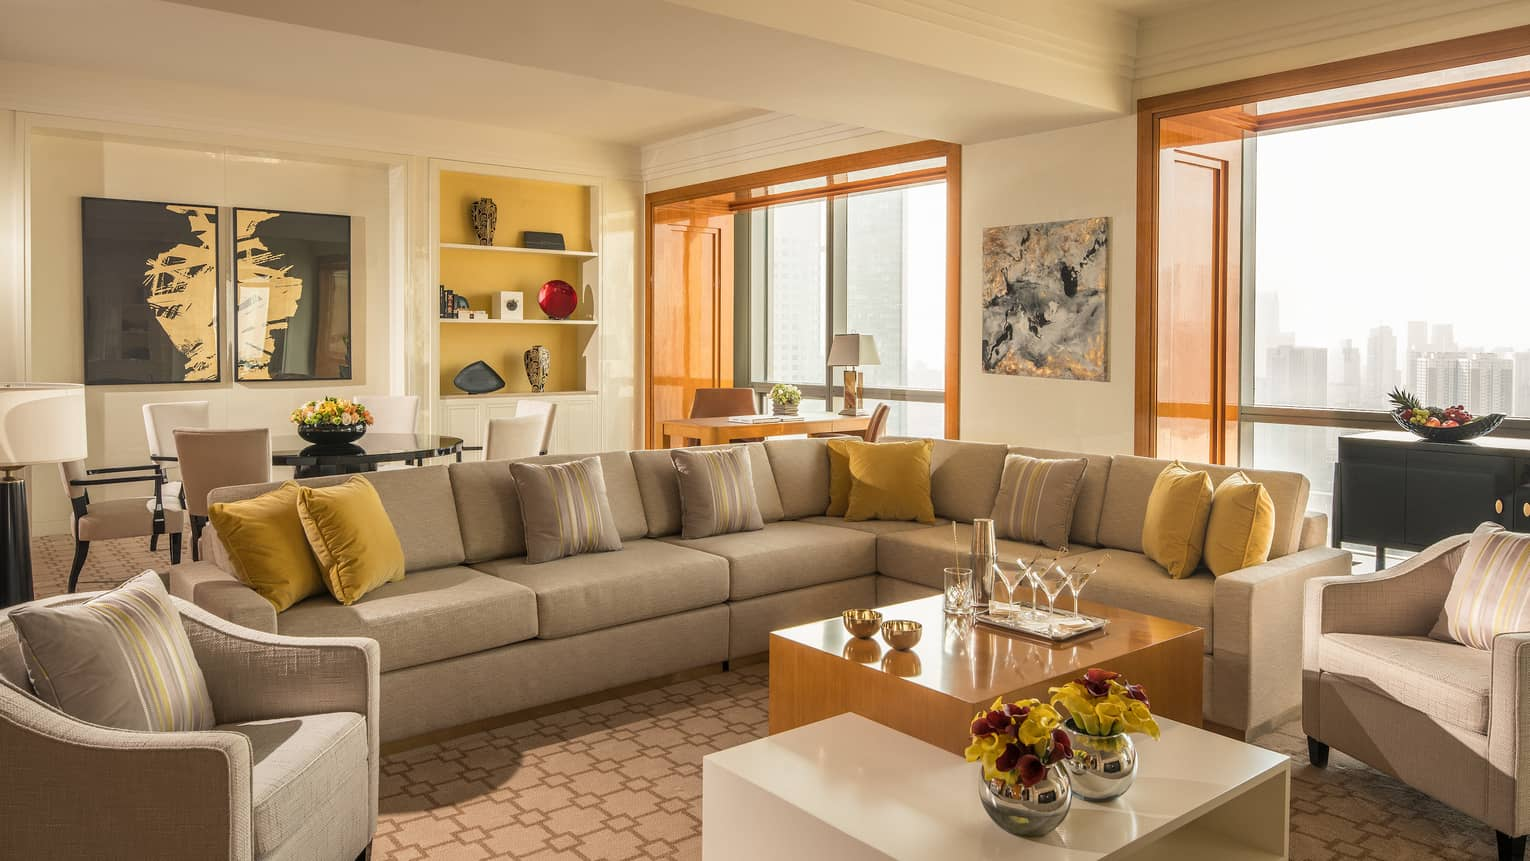 Four Seasons Suite long sofa sectional with yellow pillows, tables, large picture windows